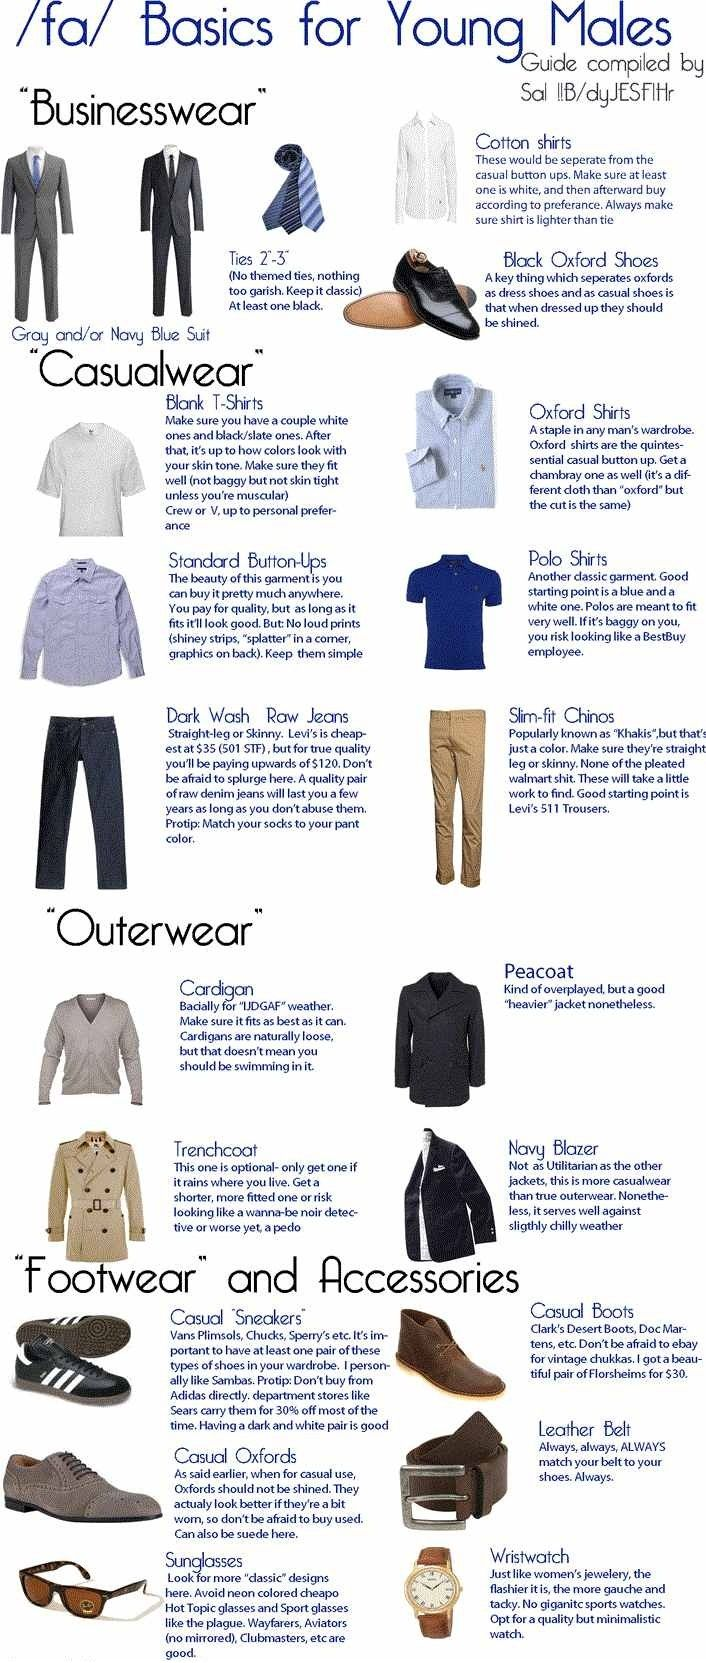 69b377d1b College menswear - Basic fashion tips for college age young adults ...